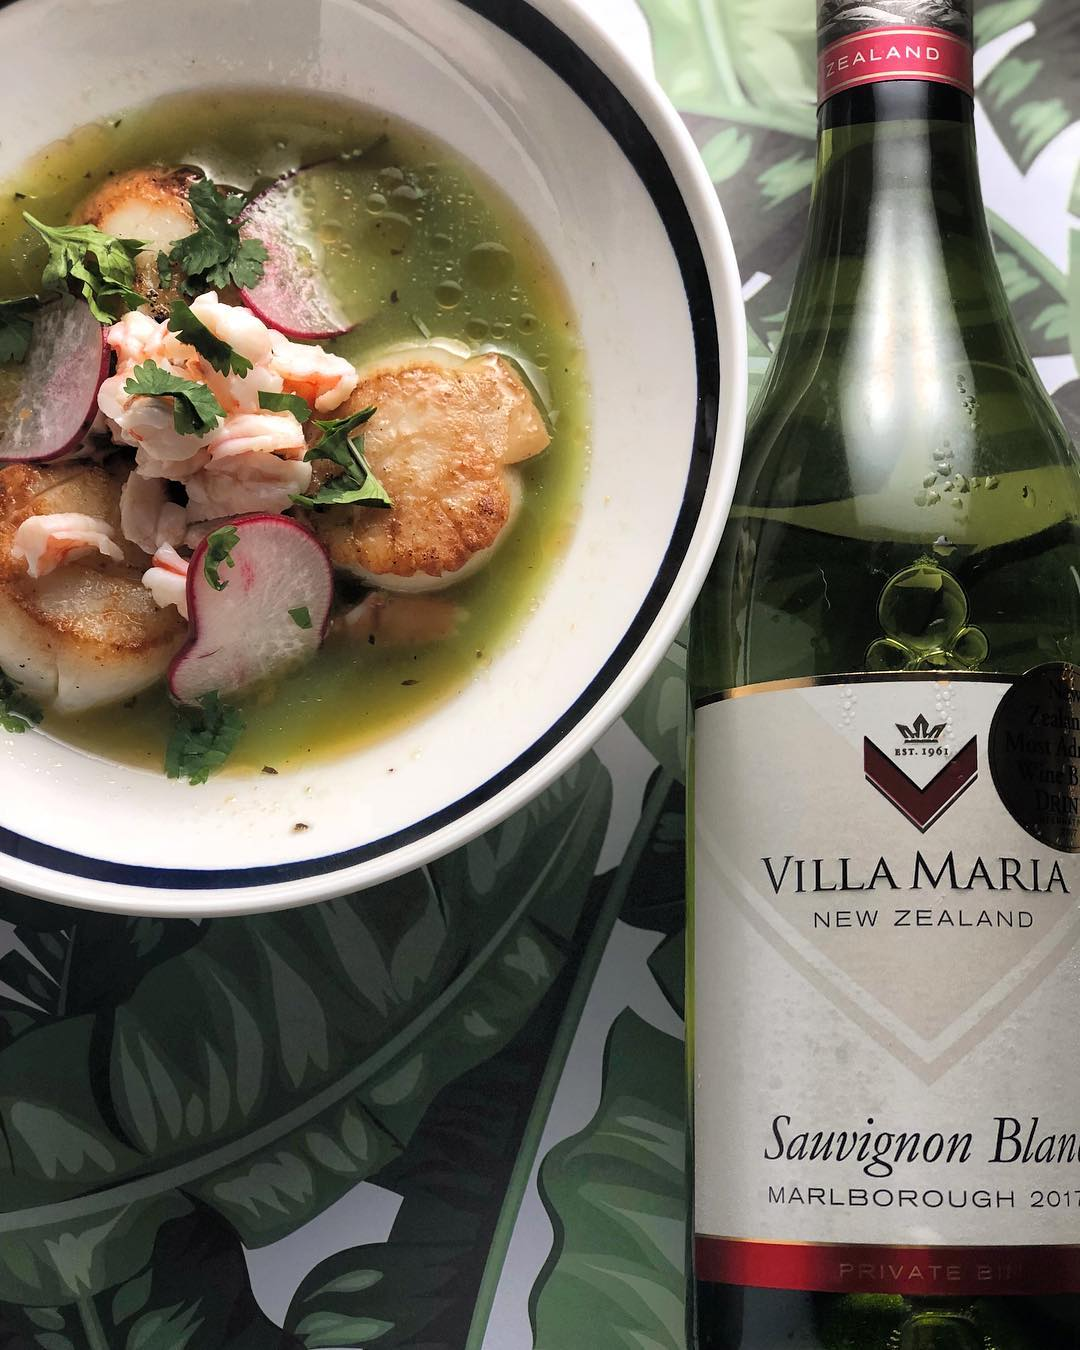 The Best Recipes to Pair with Sauvignon Blanc